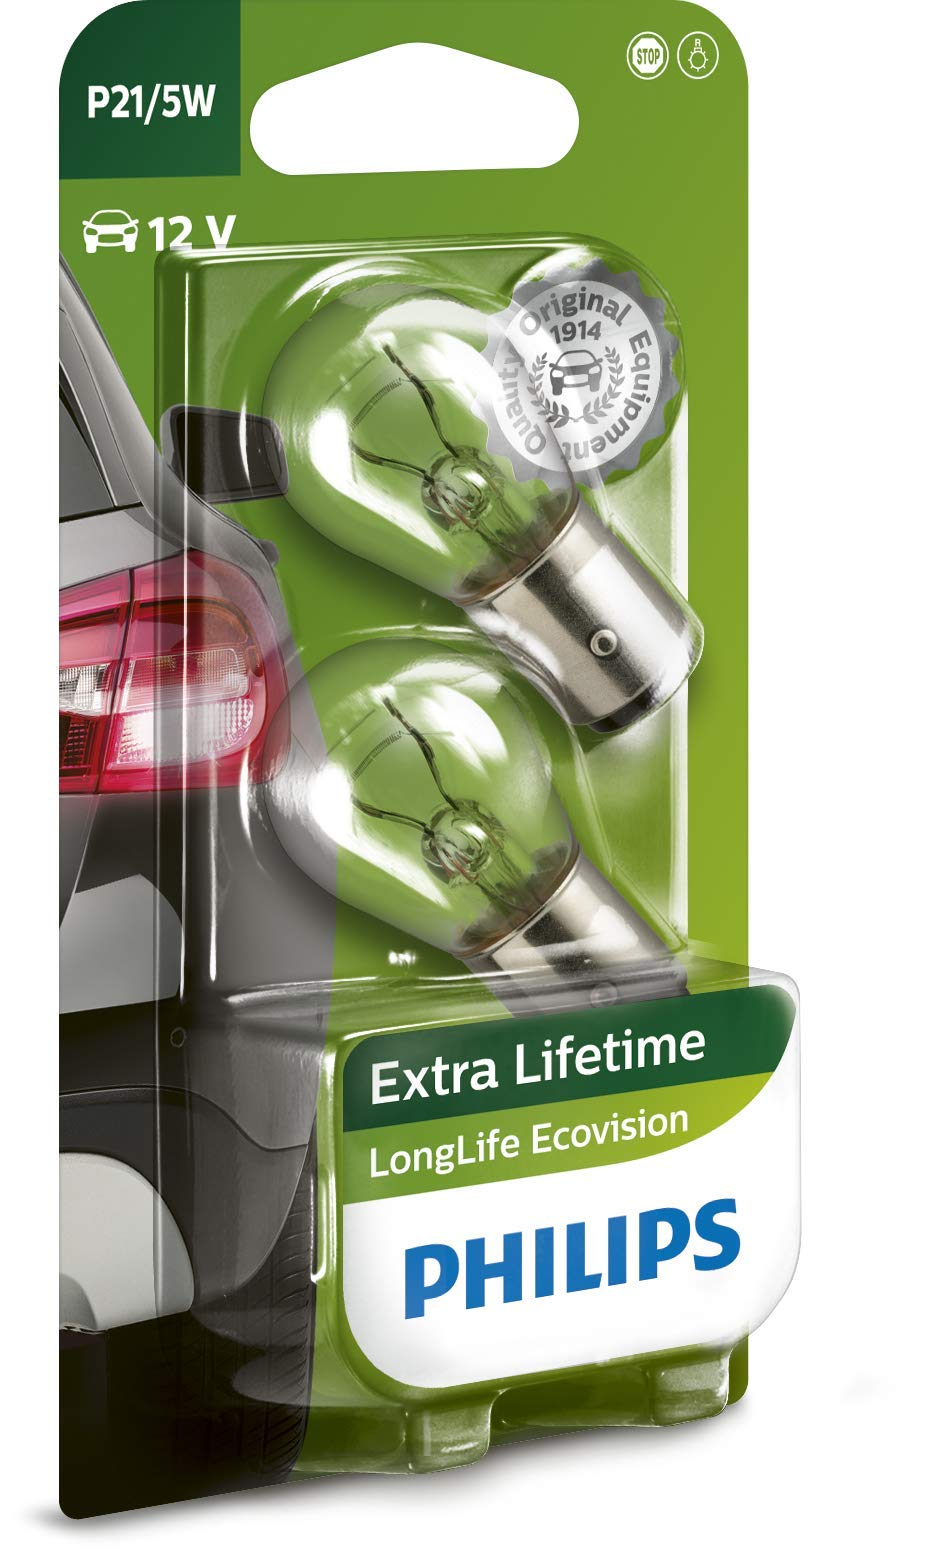 Philips 12499LLECOB2 LongLife EcoVision P21/5W Signallampe 12499LLECOB2, 2er Blister von Philips automotive lighting